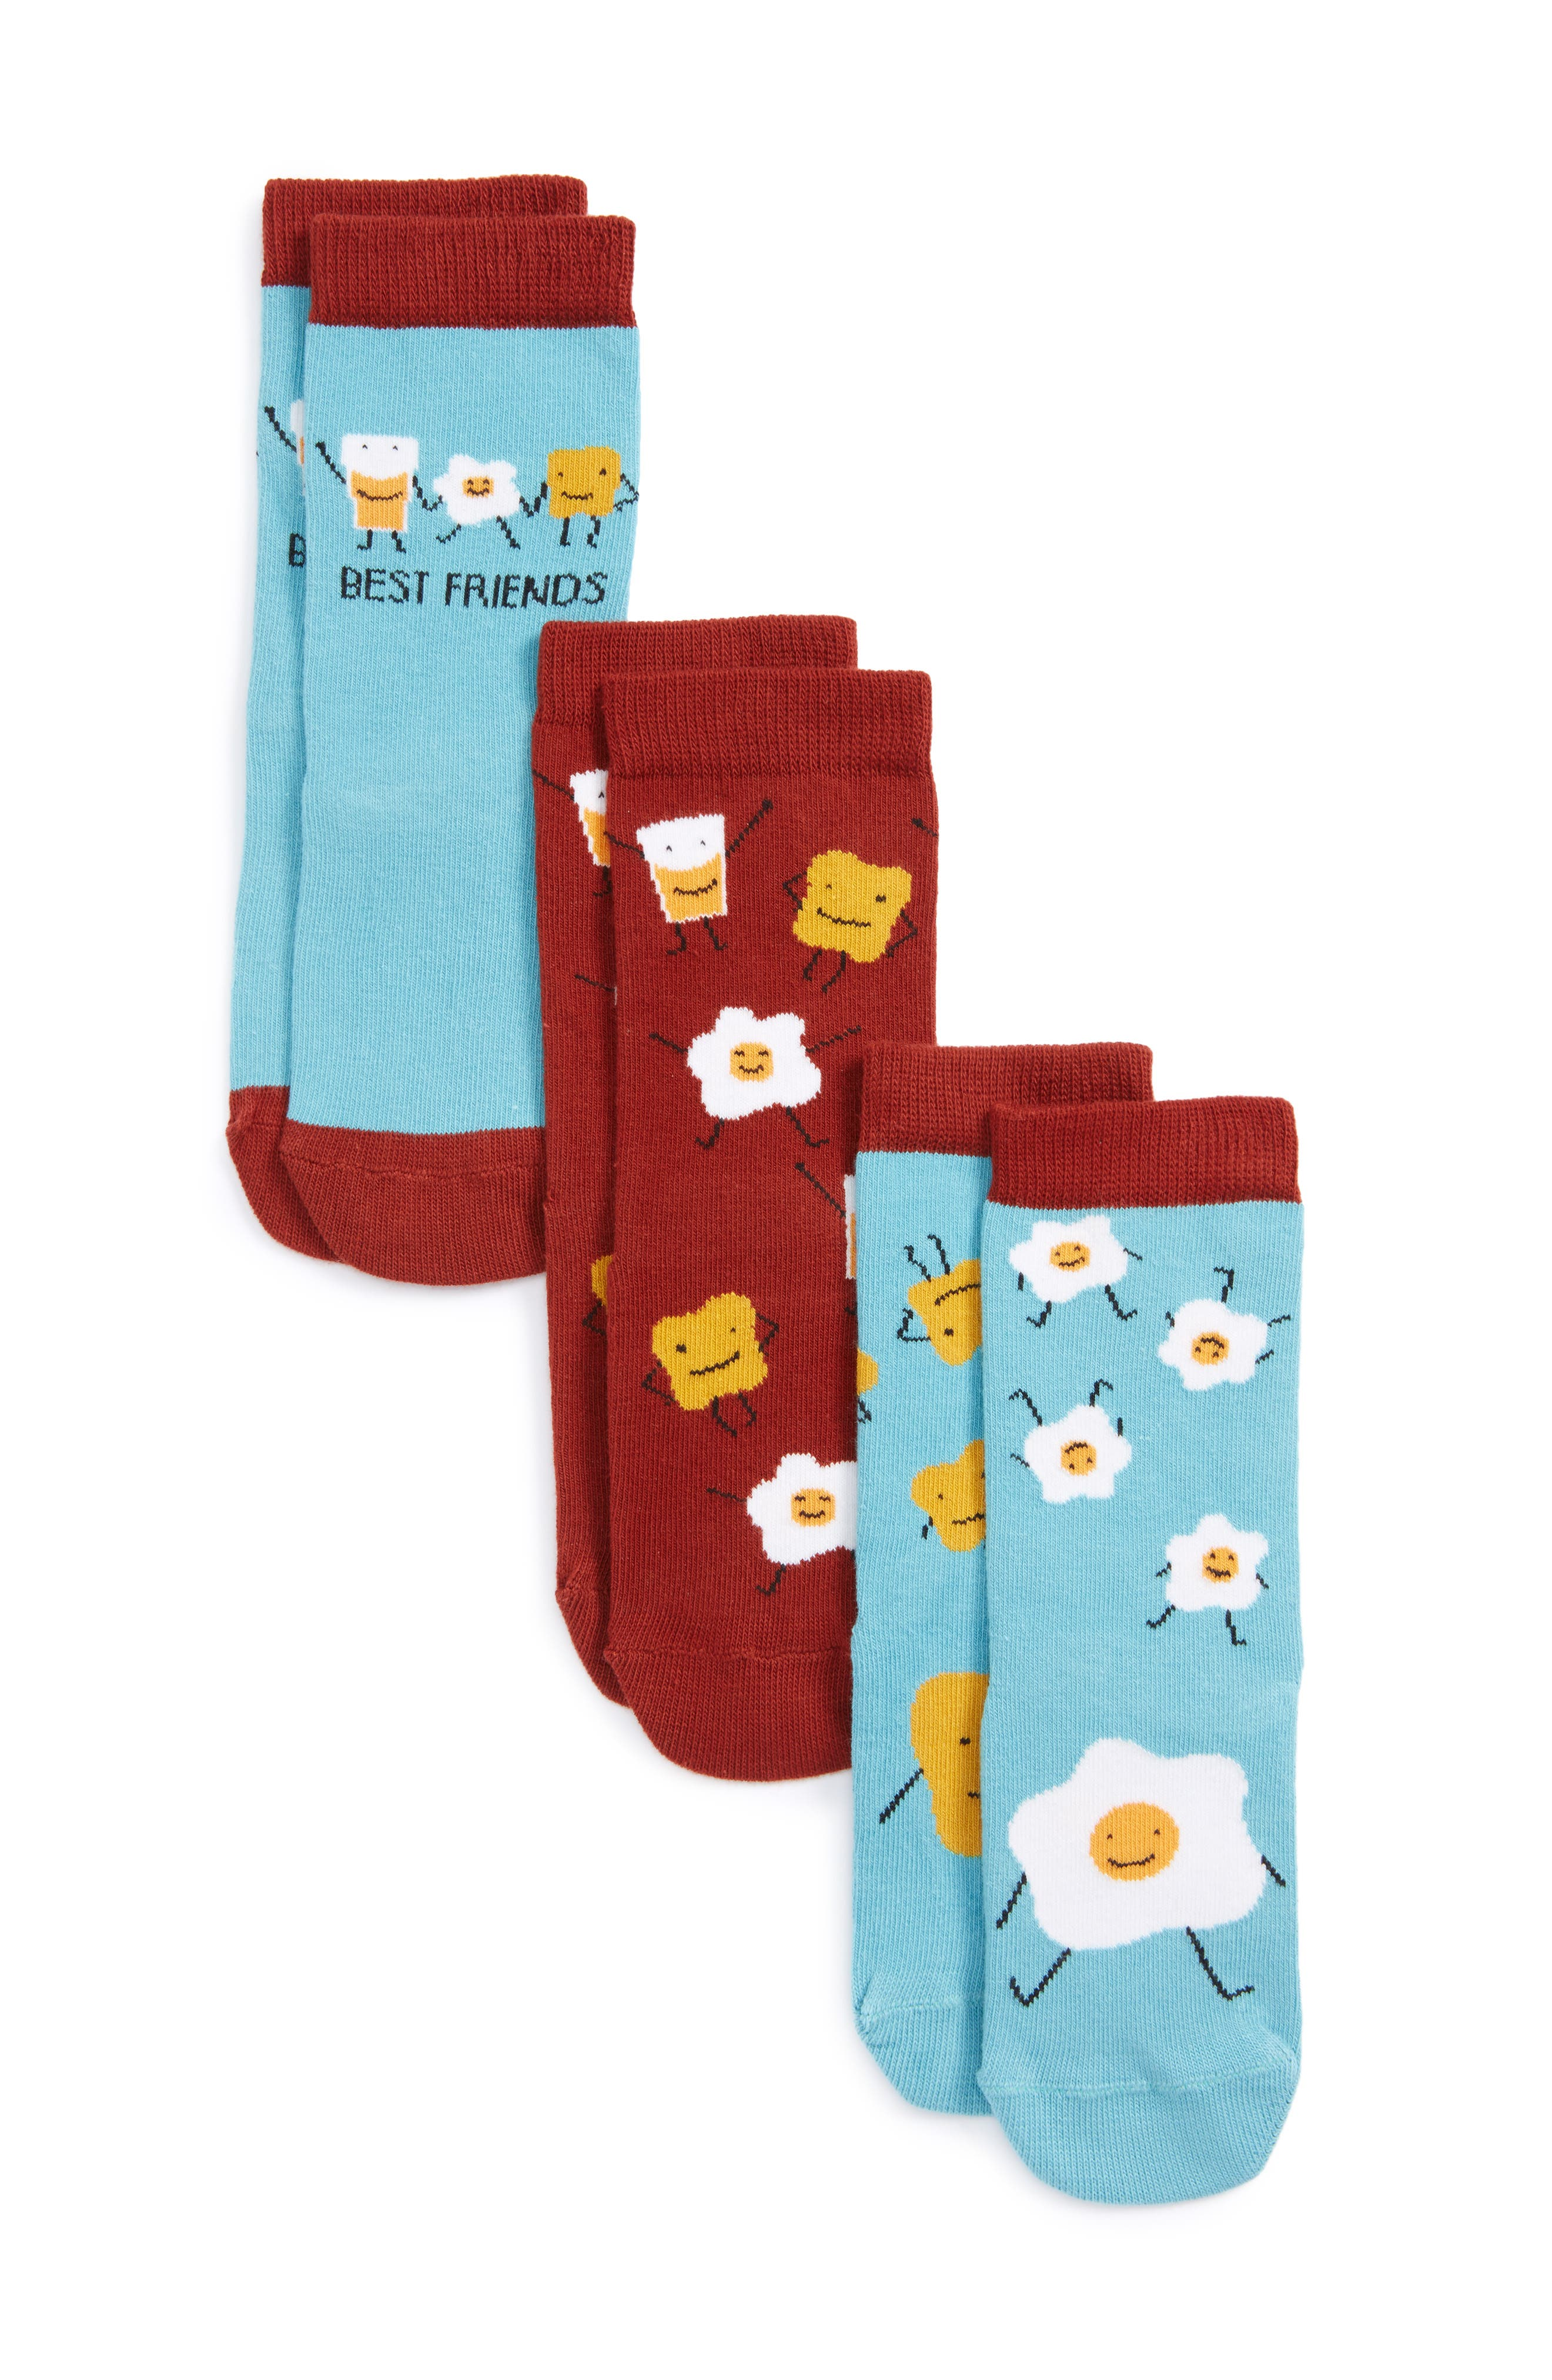 Alternate Image 1 Selected - Tucker + Tate Sunny Side Up Assorted 3-Pack Crew Socks (Toddler, Little Kid & Big Kid)